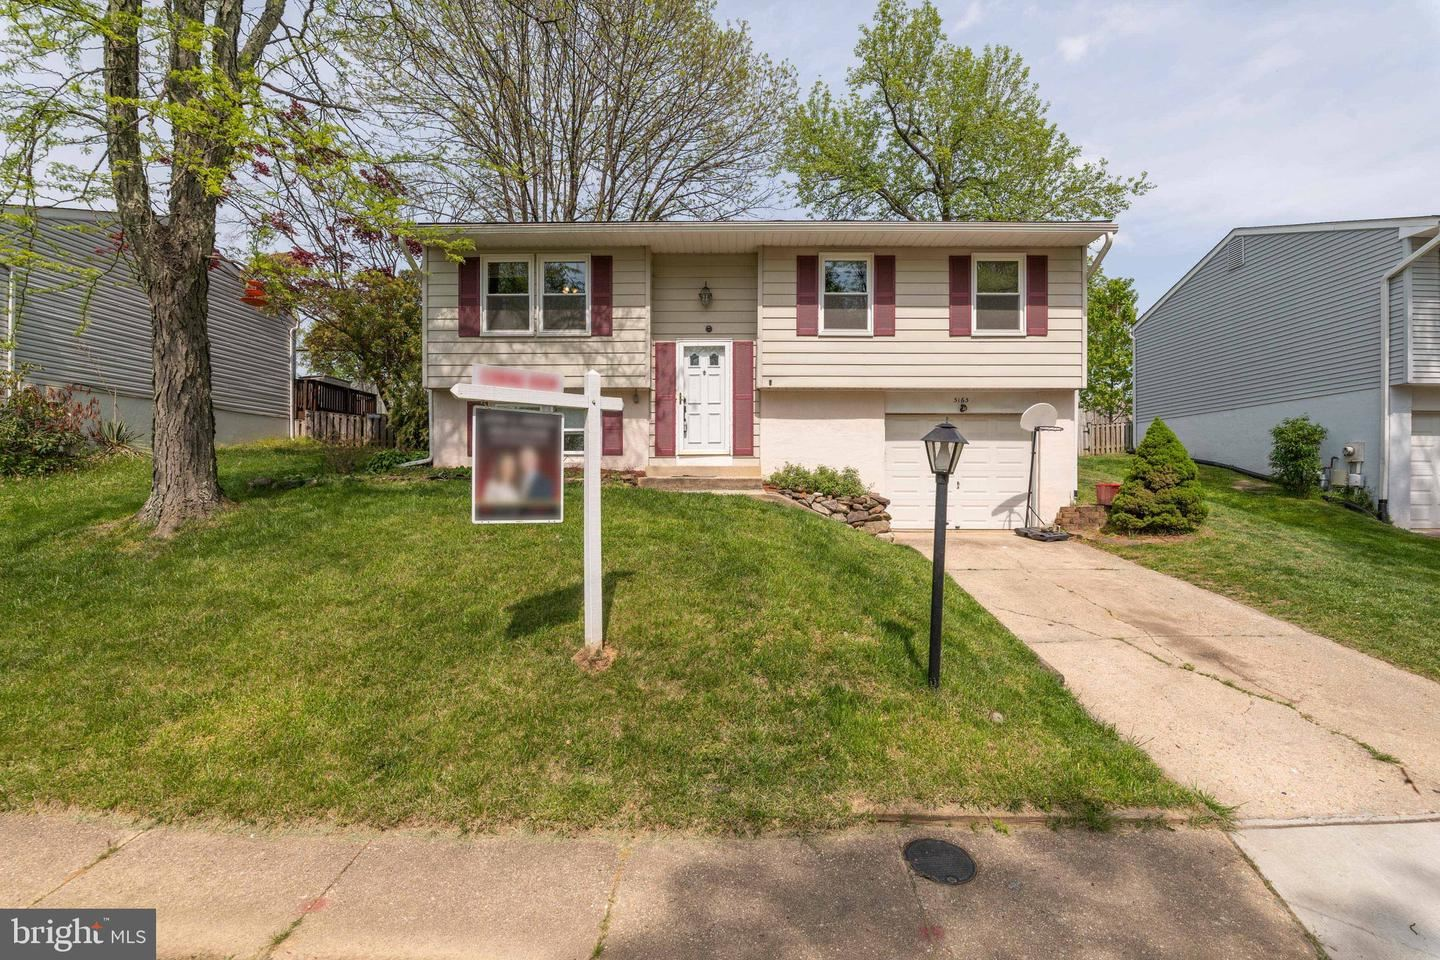 5165 ORCHARD GRN, Columbia, MD 21045 - MLS#: MDHW293732